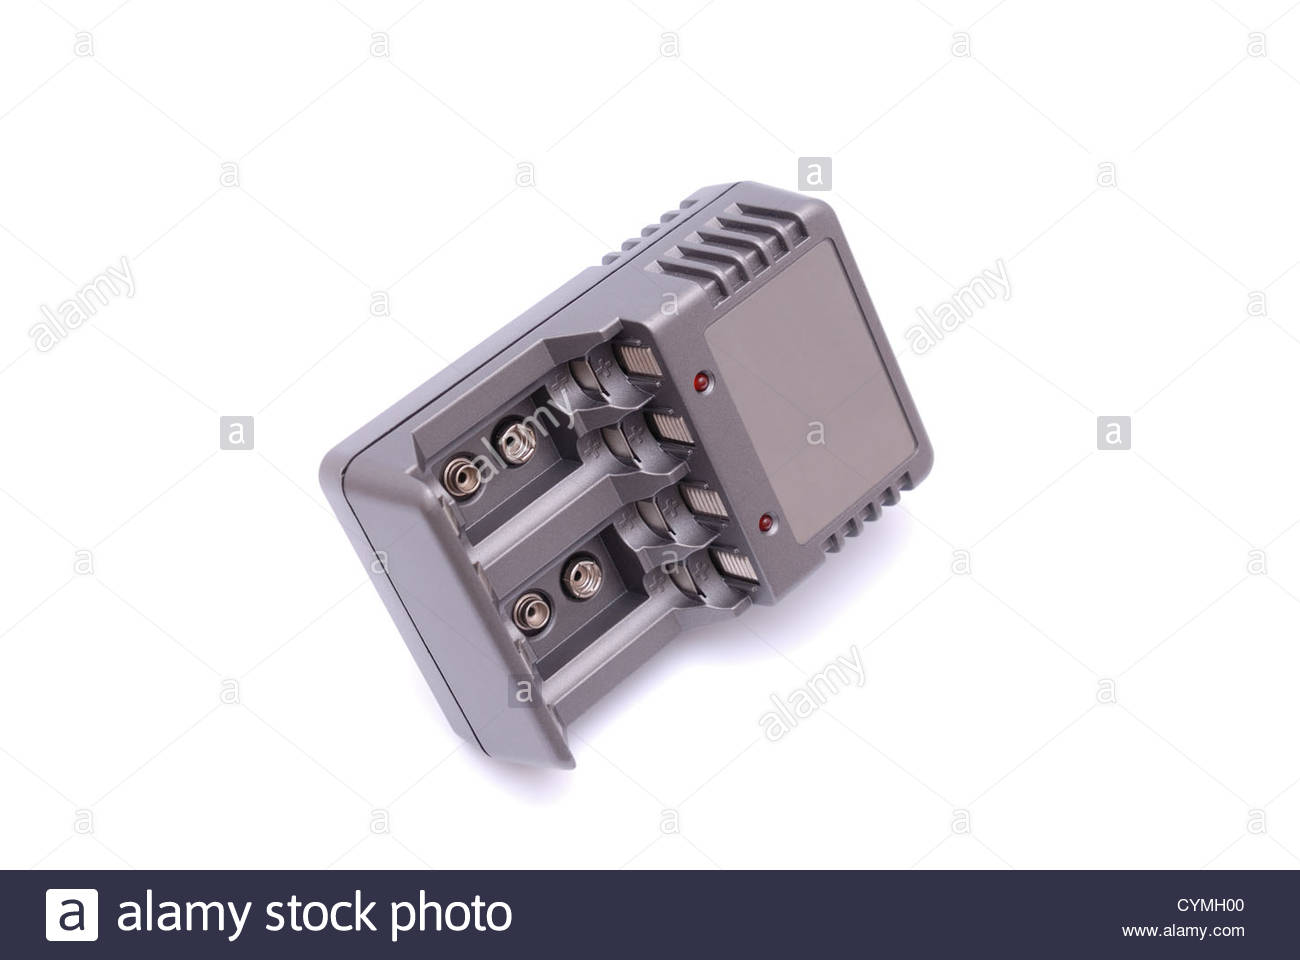 Accu Rechargeable Accu Charging Rechargeable Stock Photos Accu Charging